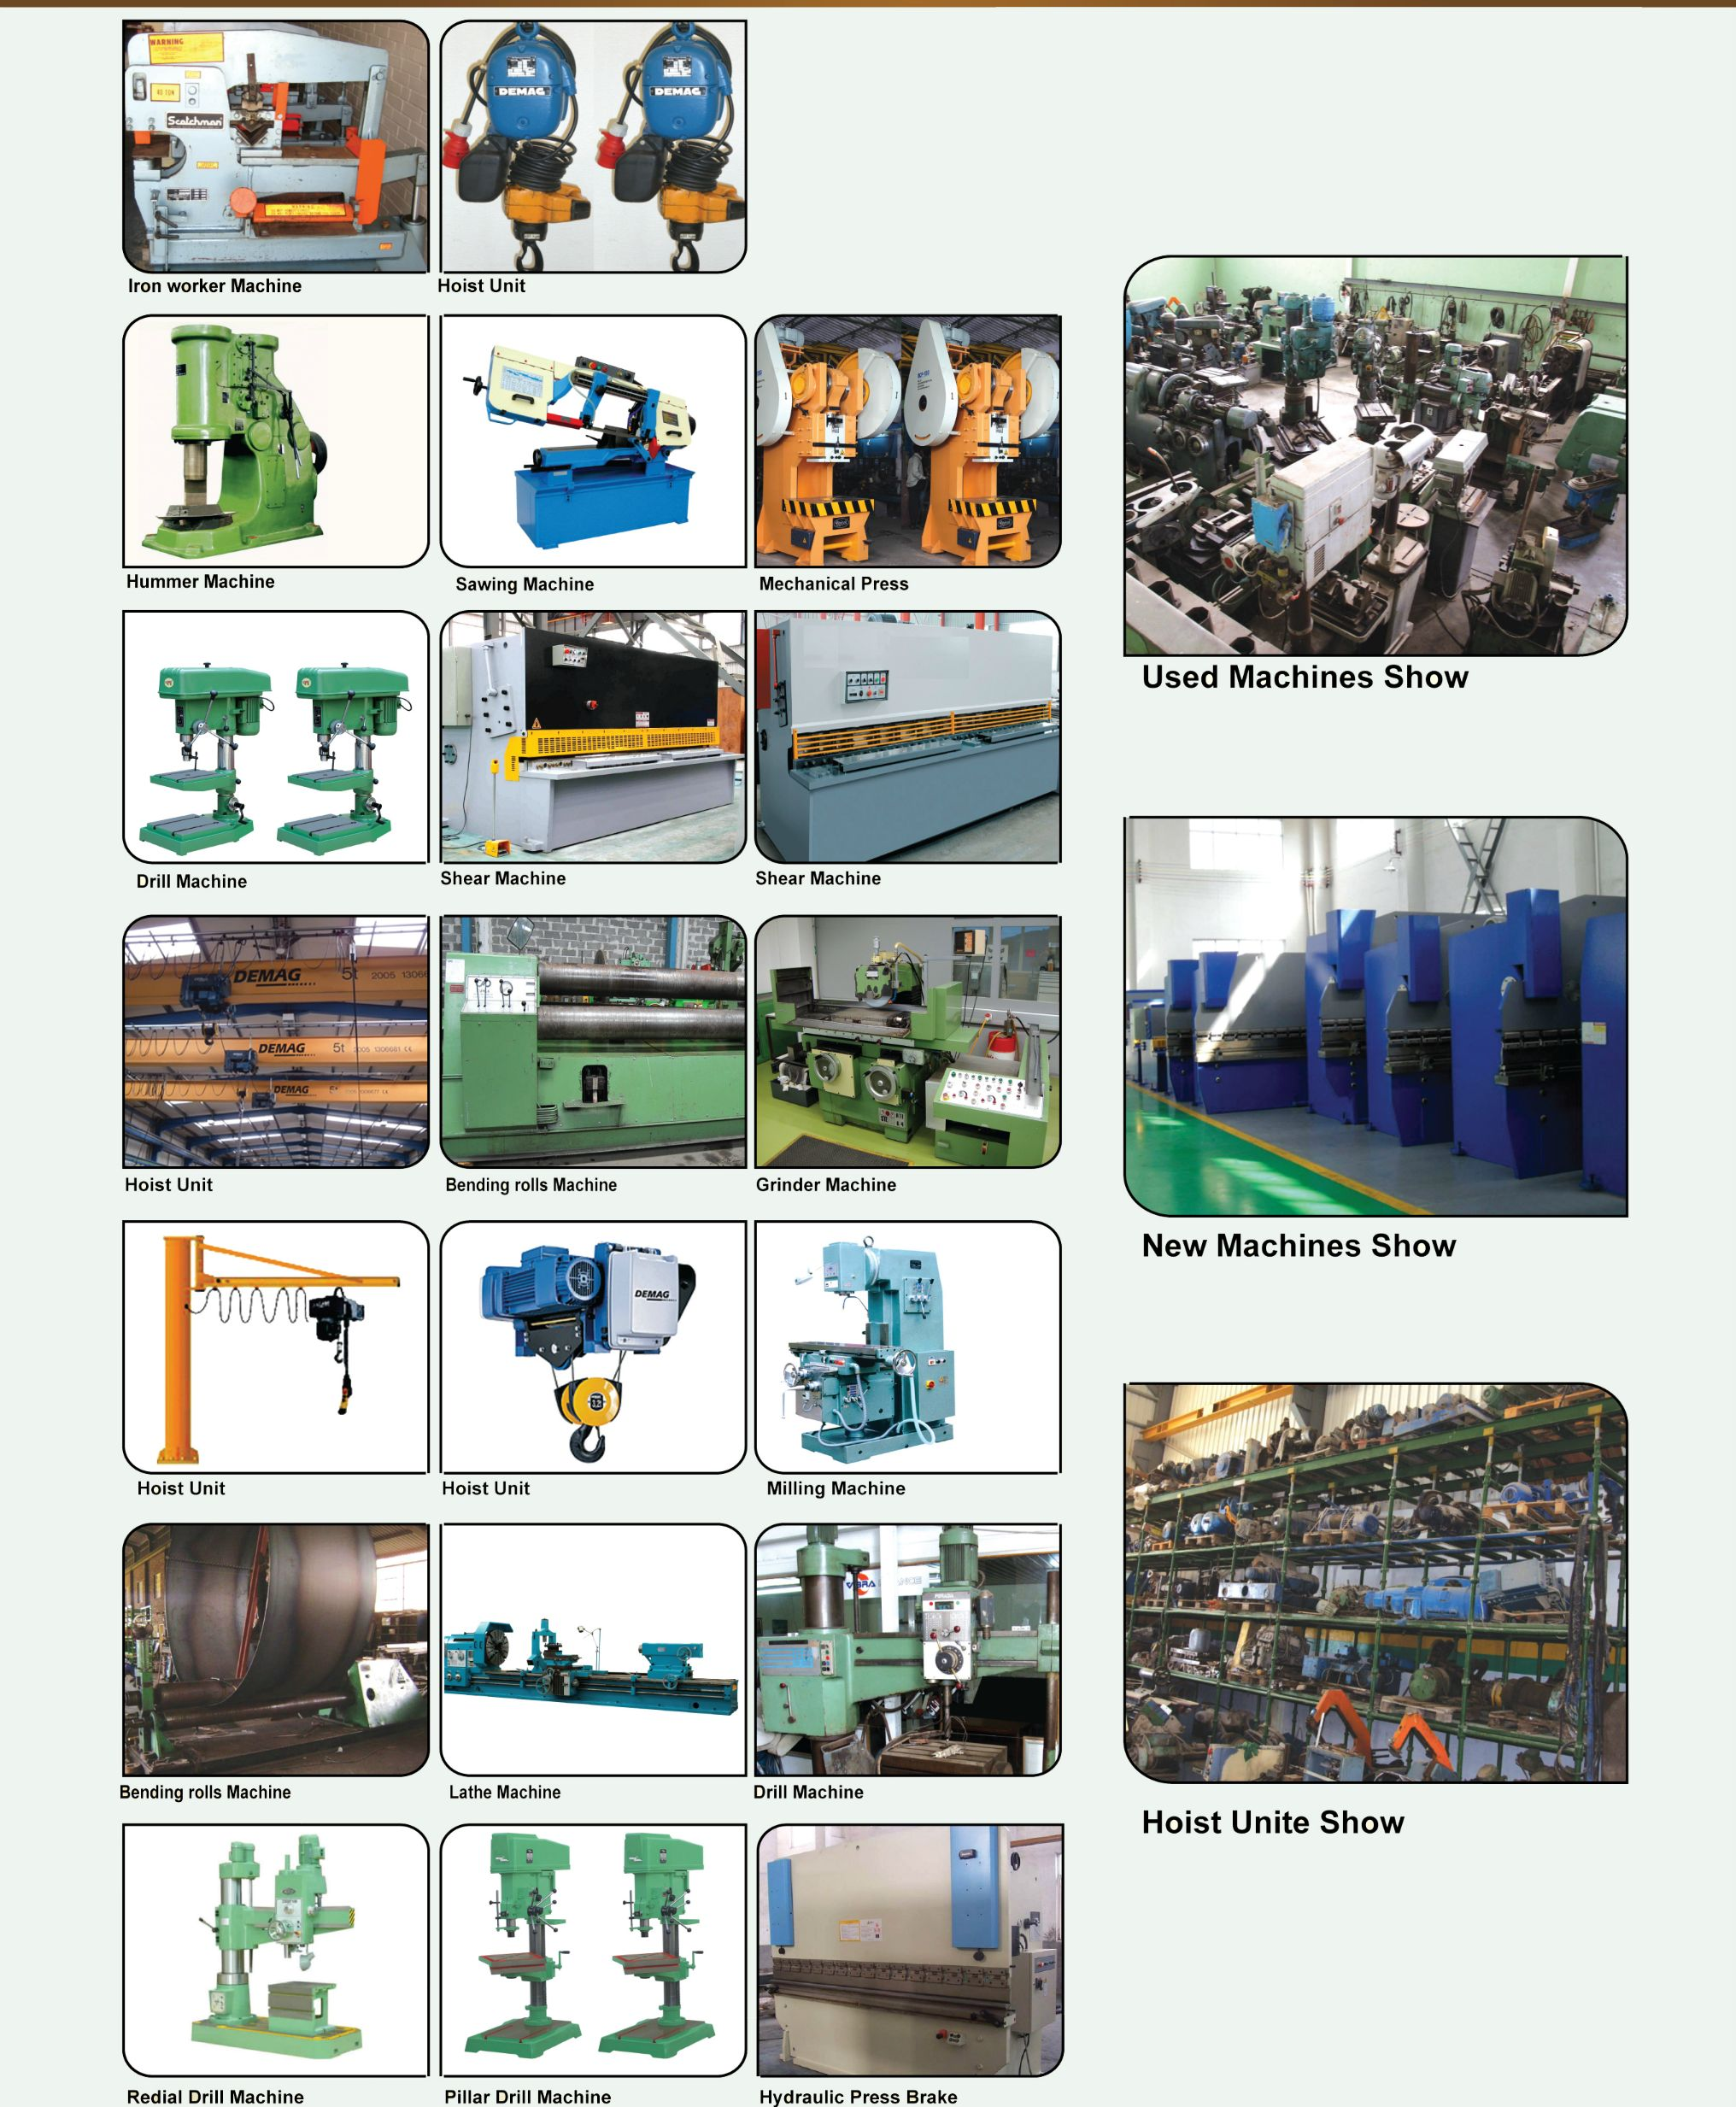 Trading of used metal working machines